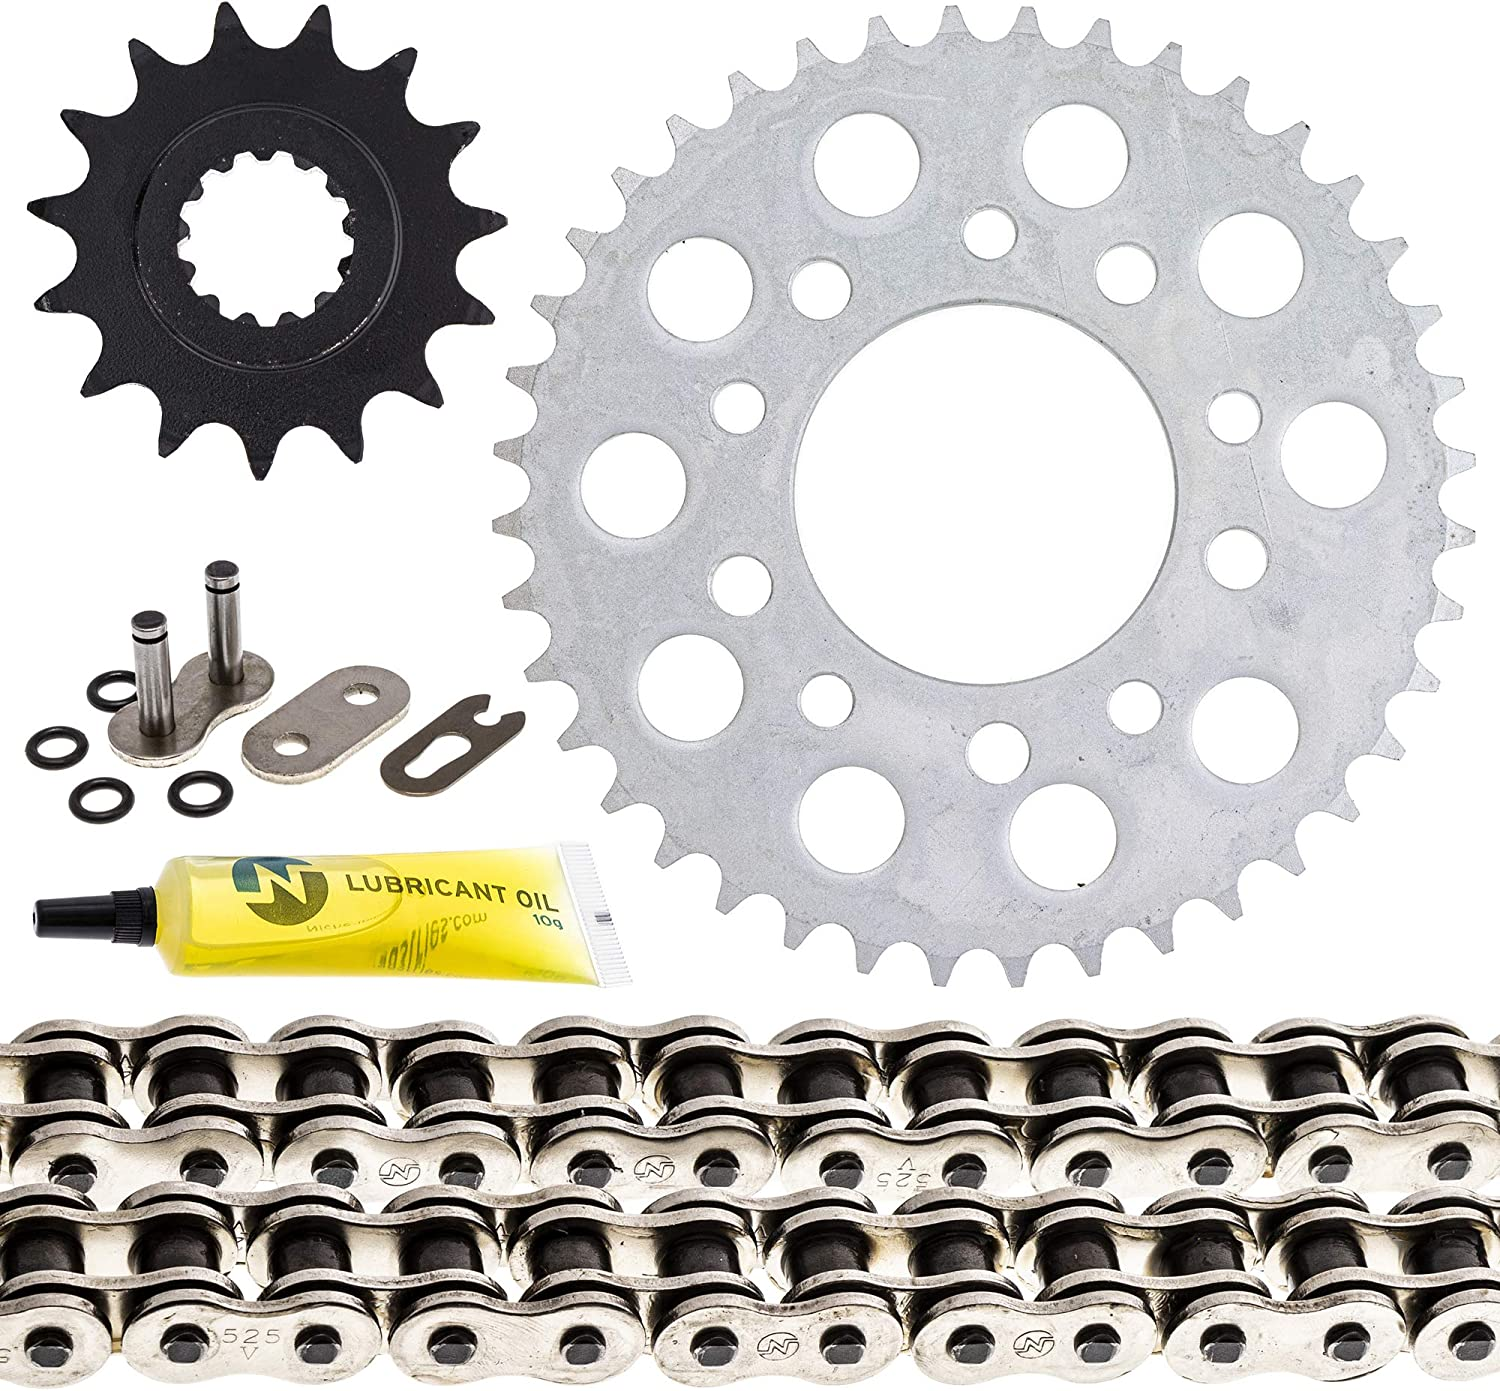 NICHE Drive Sprocket Chain Combo for Honda CB750 Front 15 Rear 40 Tooth 525HZ Standard 112 Links